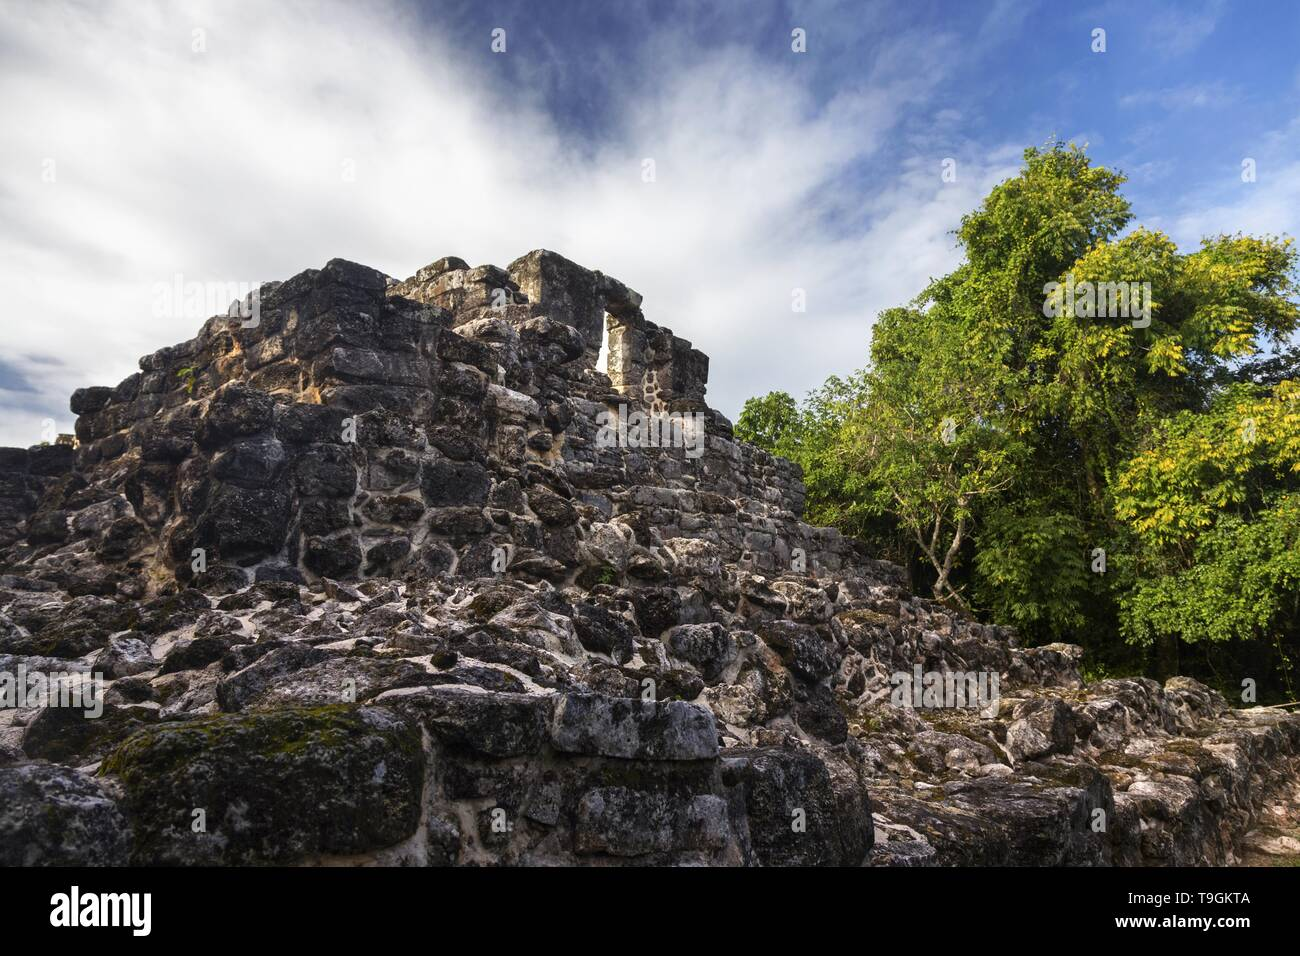 Ancient Mayan Civilization Ruins in San Gervasio Archeological Site, Cozumel Mexico Stock Photo